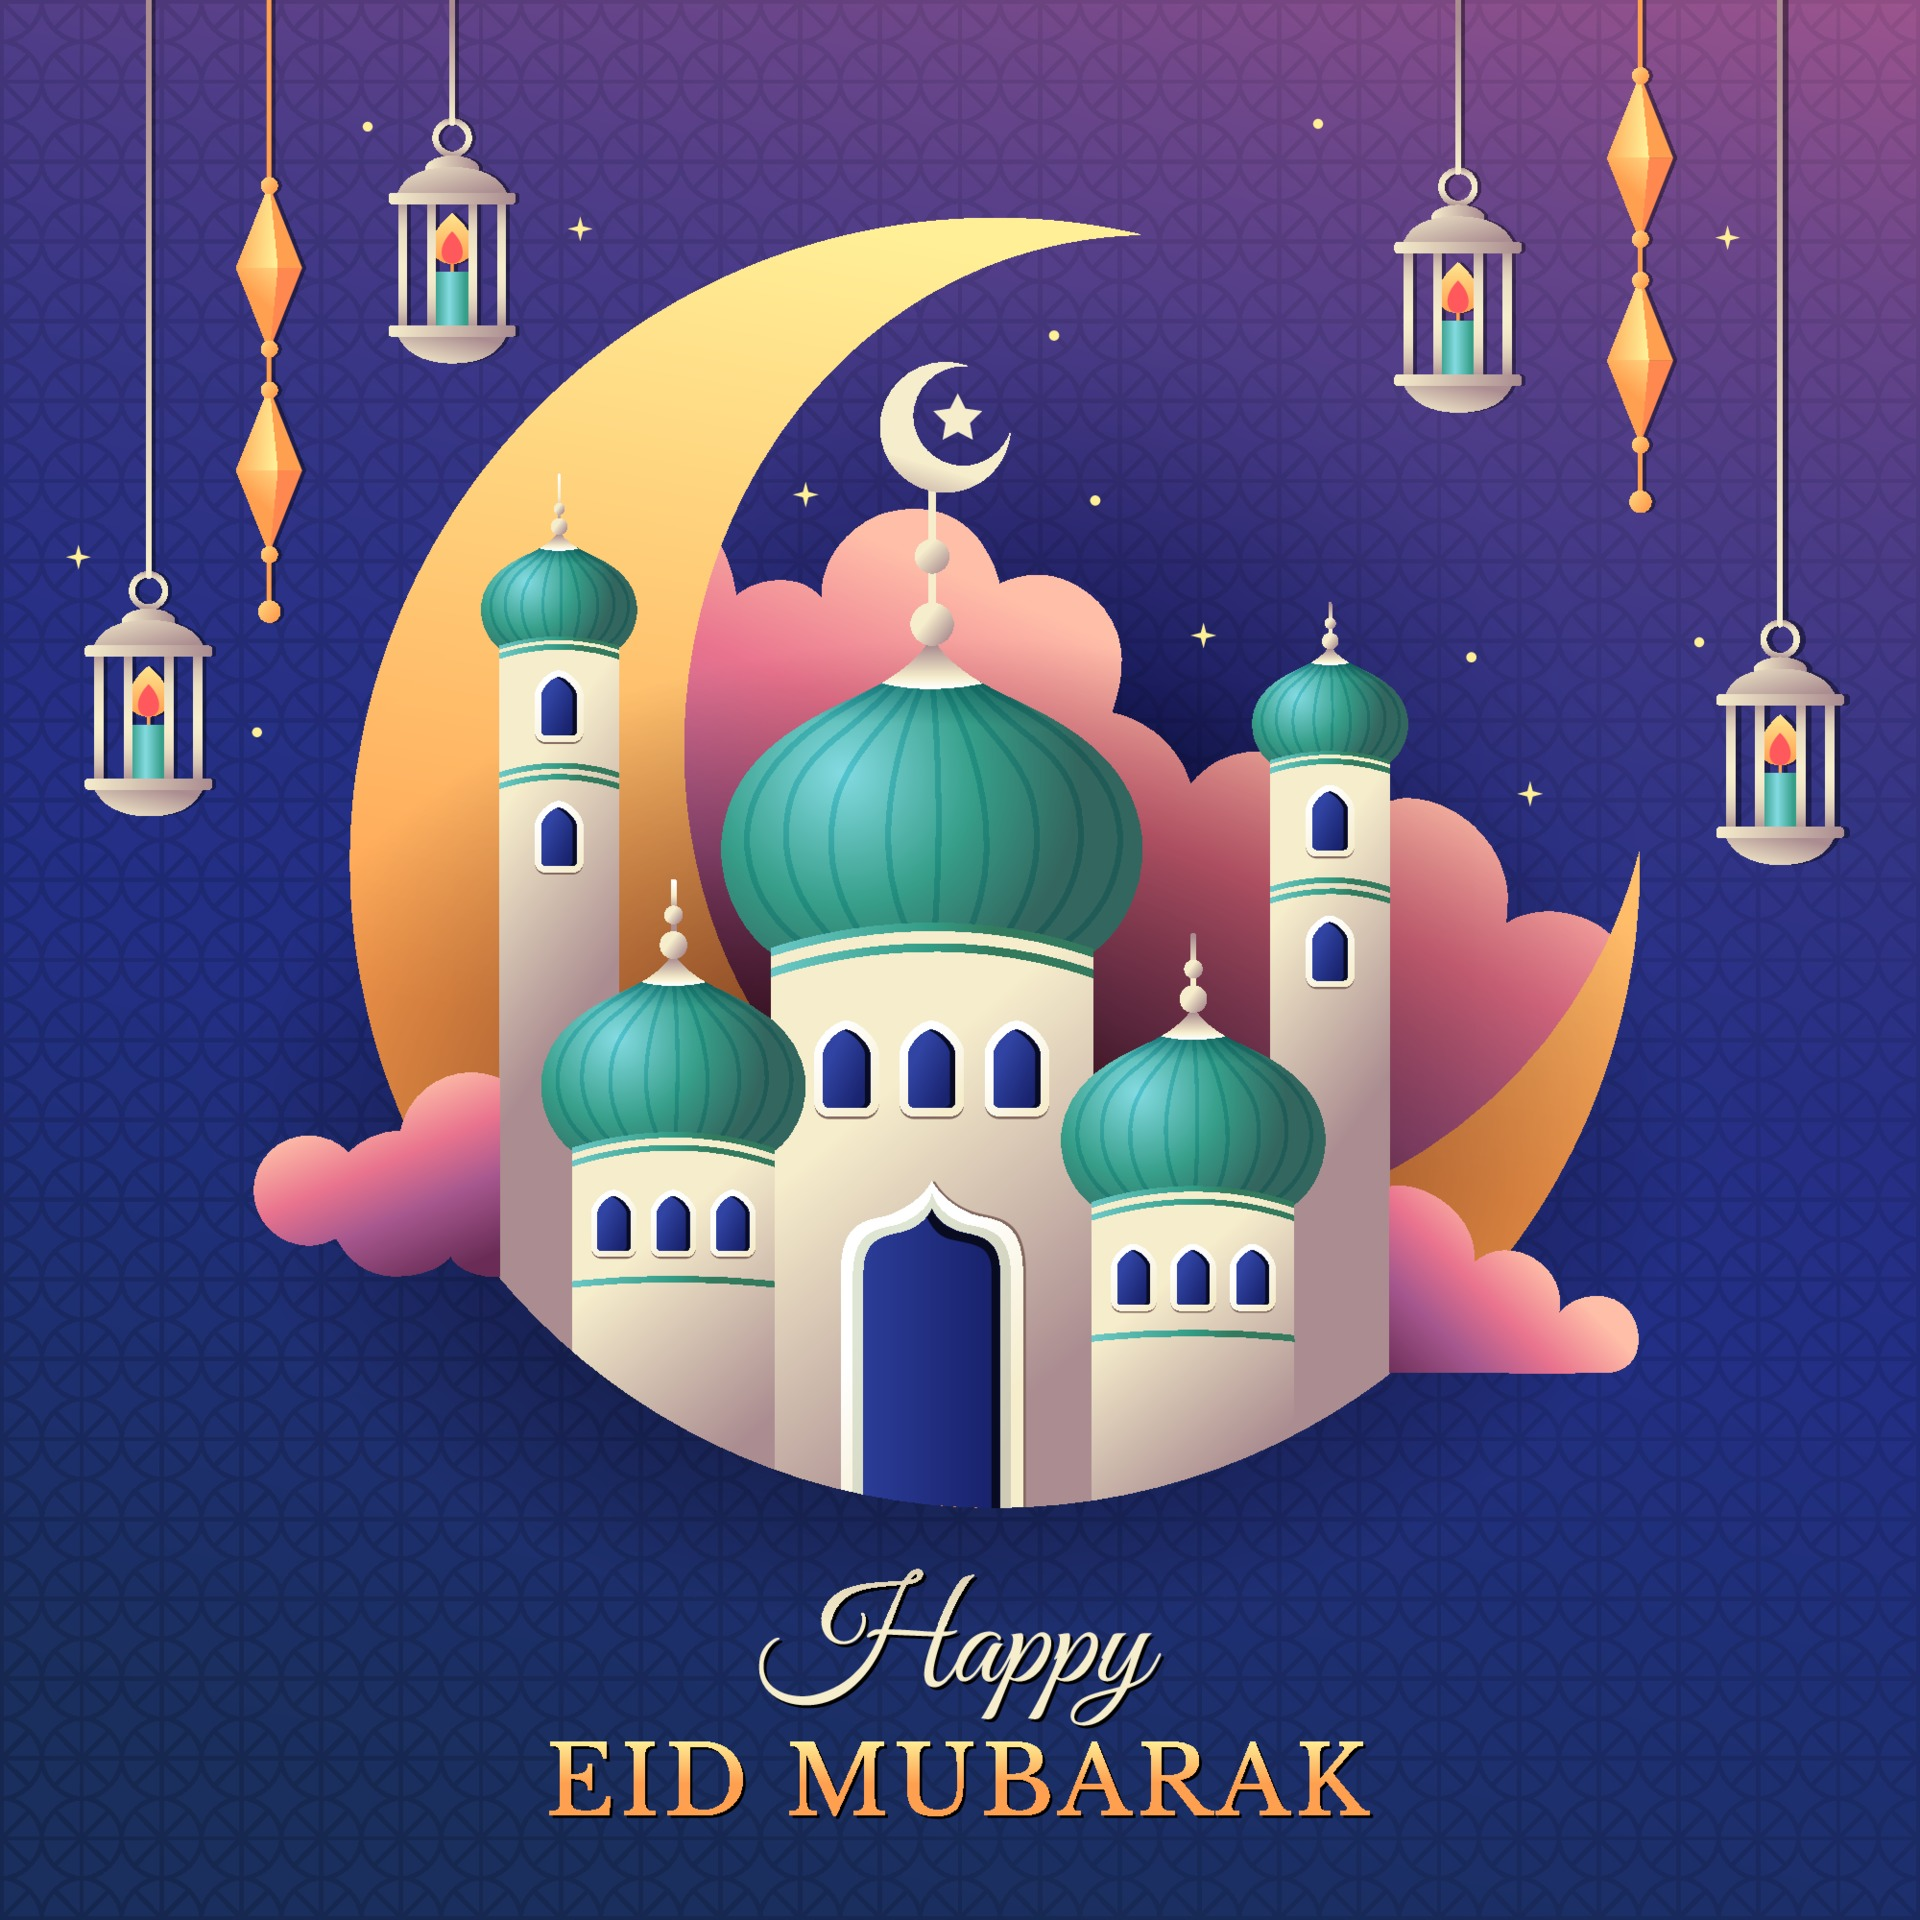 Happy Eid Mubarak Greeting With Mosque And Lanterns 2206429 Vector Art At Vecteezy